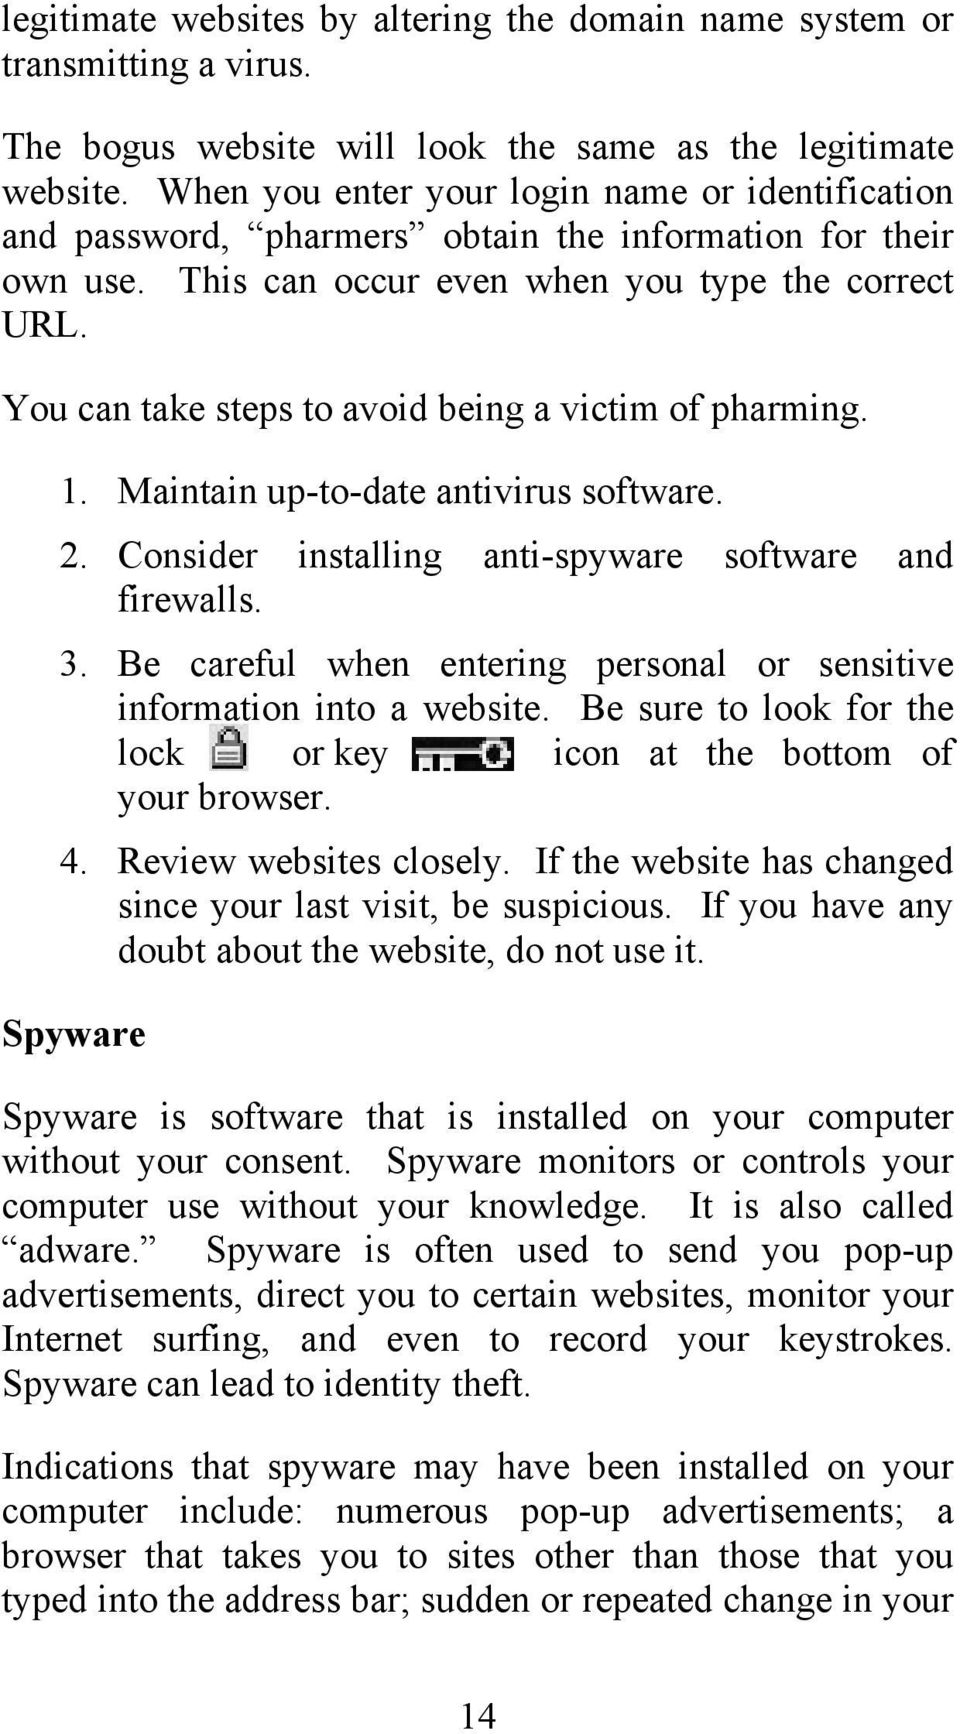 You can take steps to avoid being a victim of pharming. 1. Maintain up-to-date antivirus software. 2. Consider installing anti-spyware software and firewalls. 3.